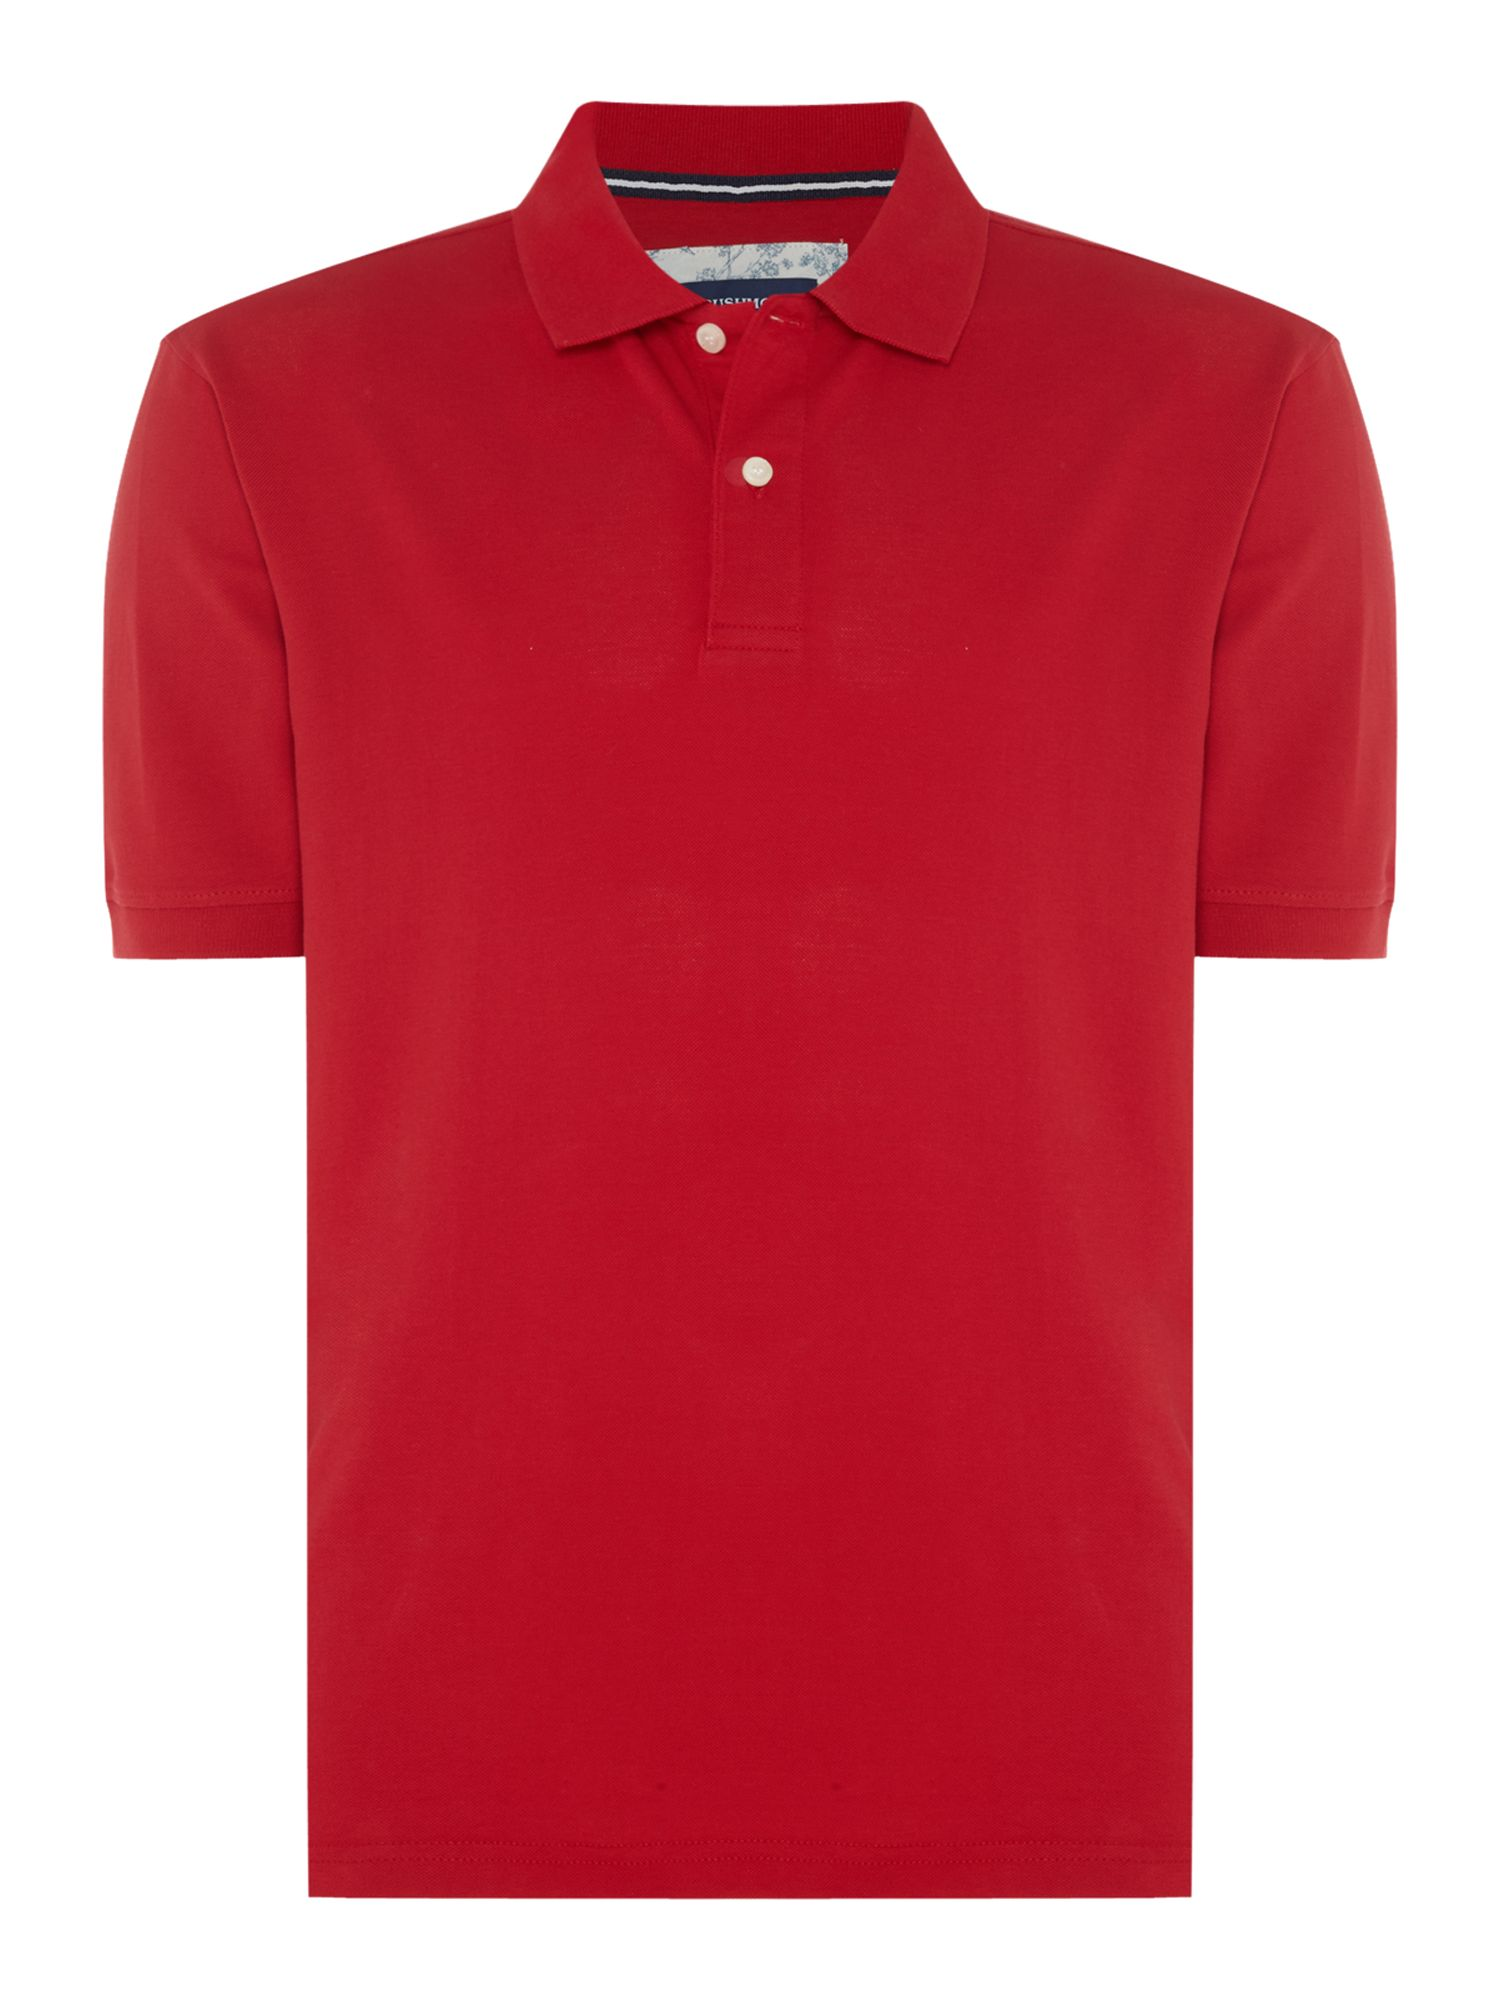 Men's Rushmore Rushmore Polo Top, Red